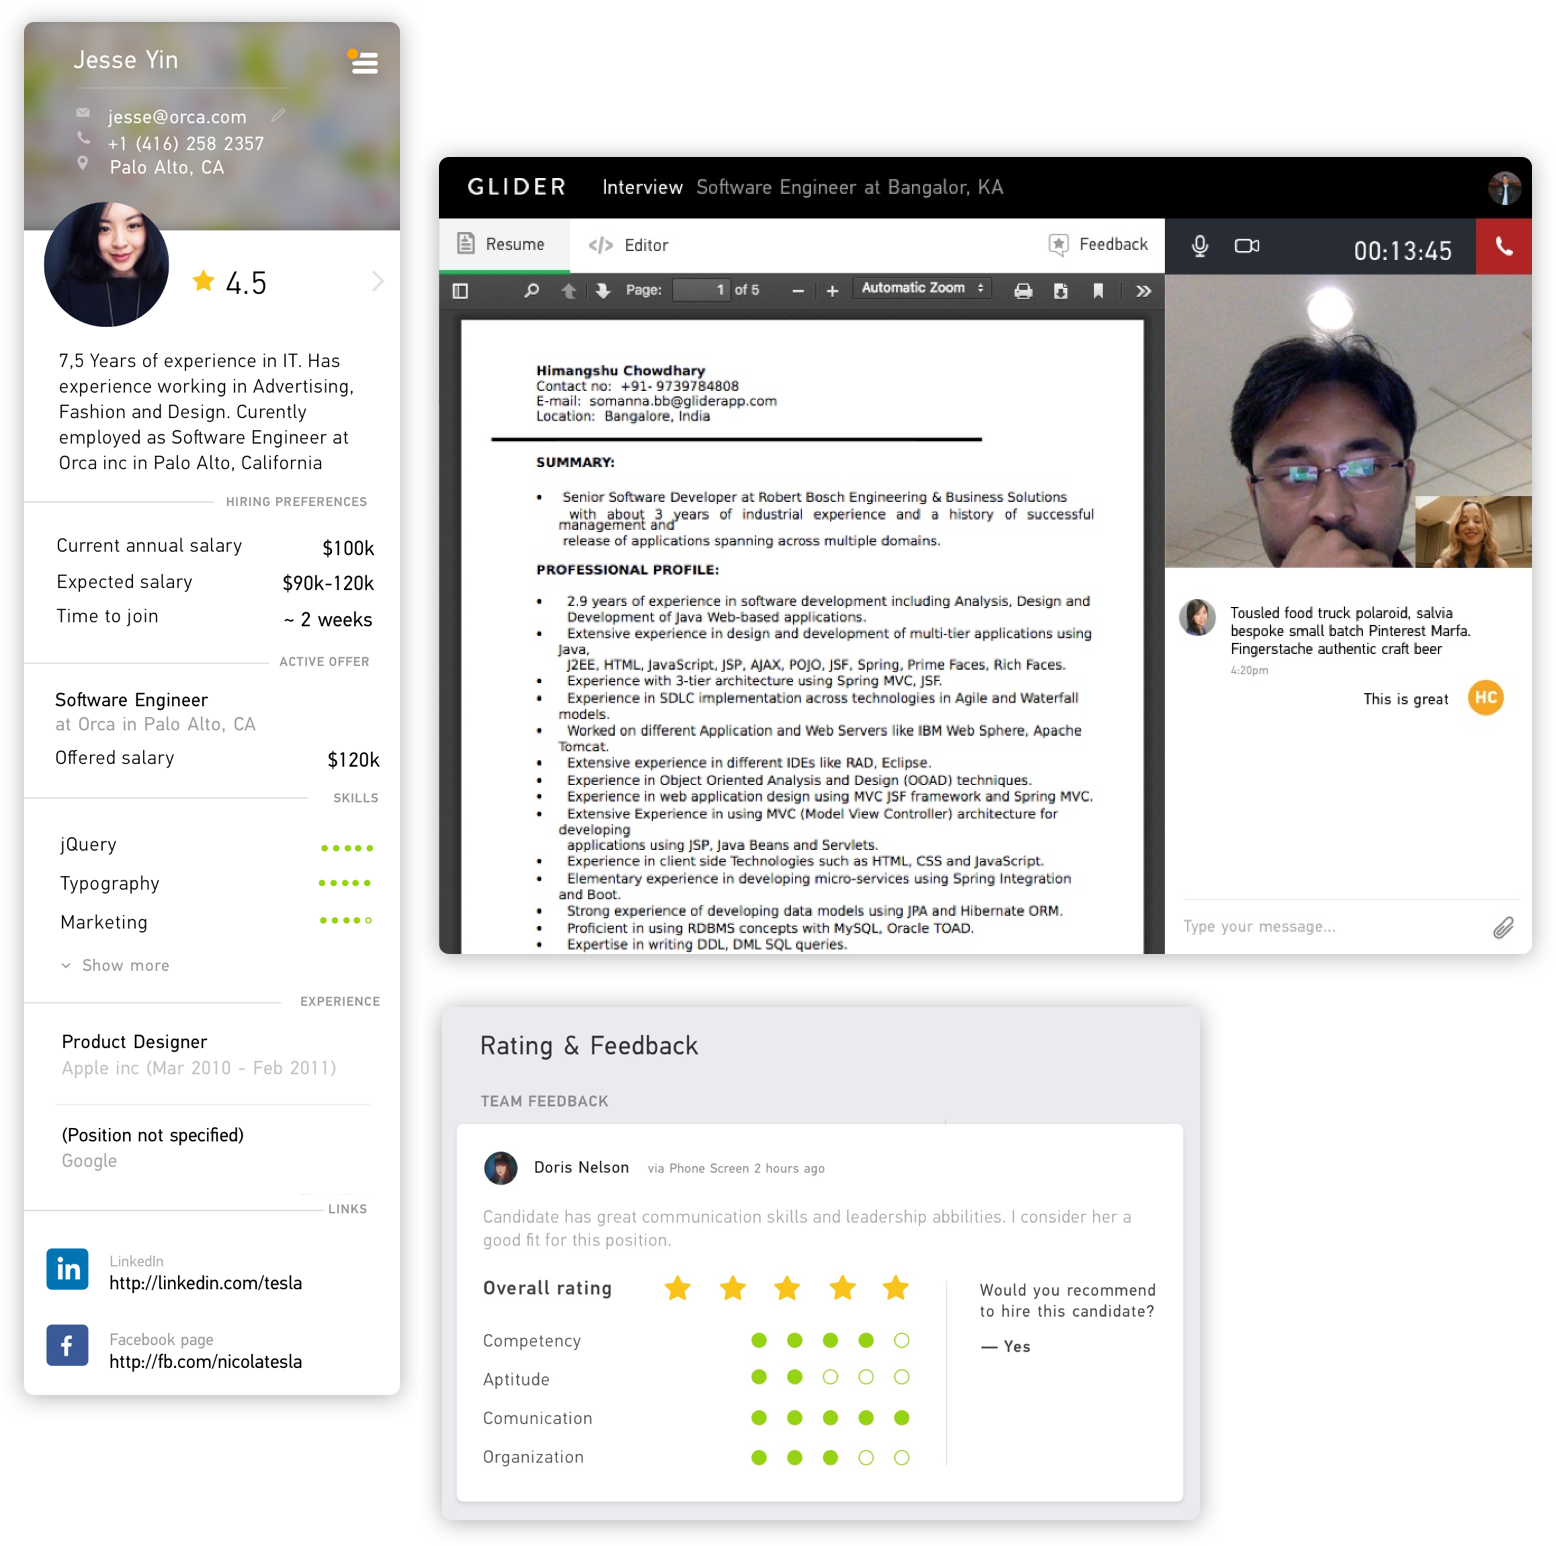 glider ai hire best candidates using online assessments and test scores and comparison other candidates any video recordings prior showcased work notes and comments the interviewer can ask pertinent